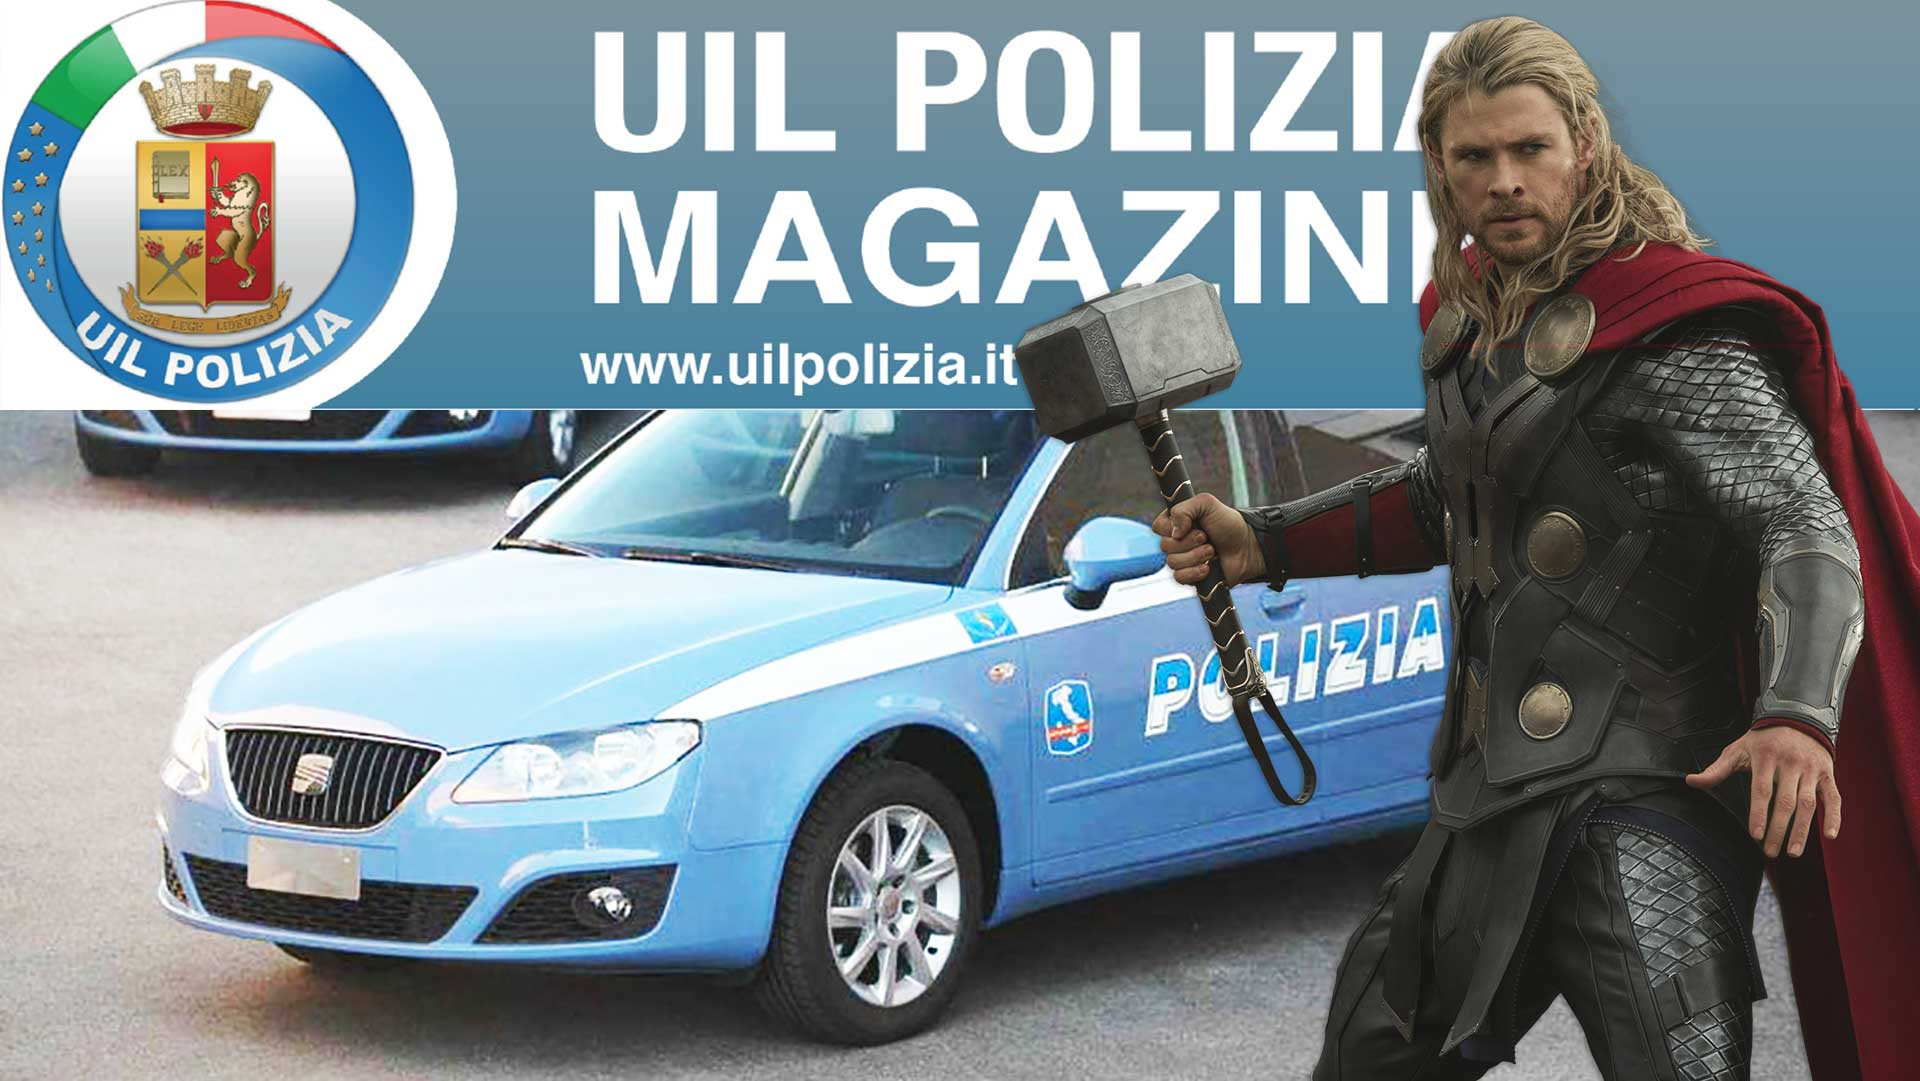 Editoriale Uil Polzia nr.1